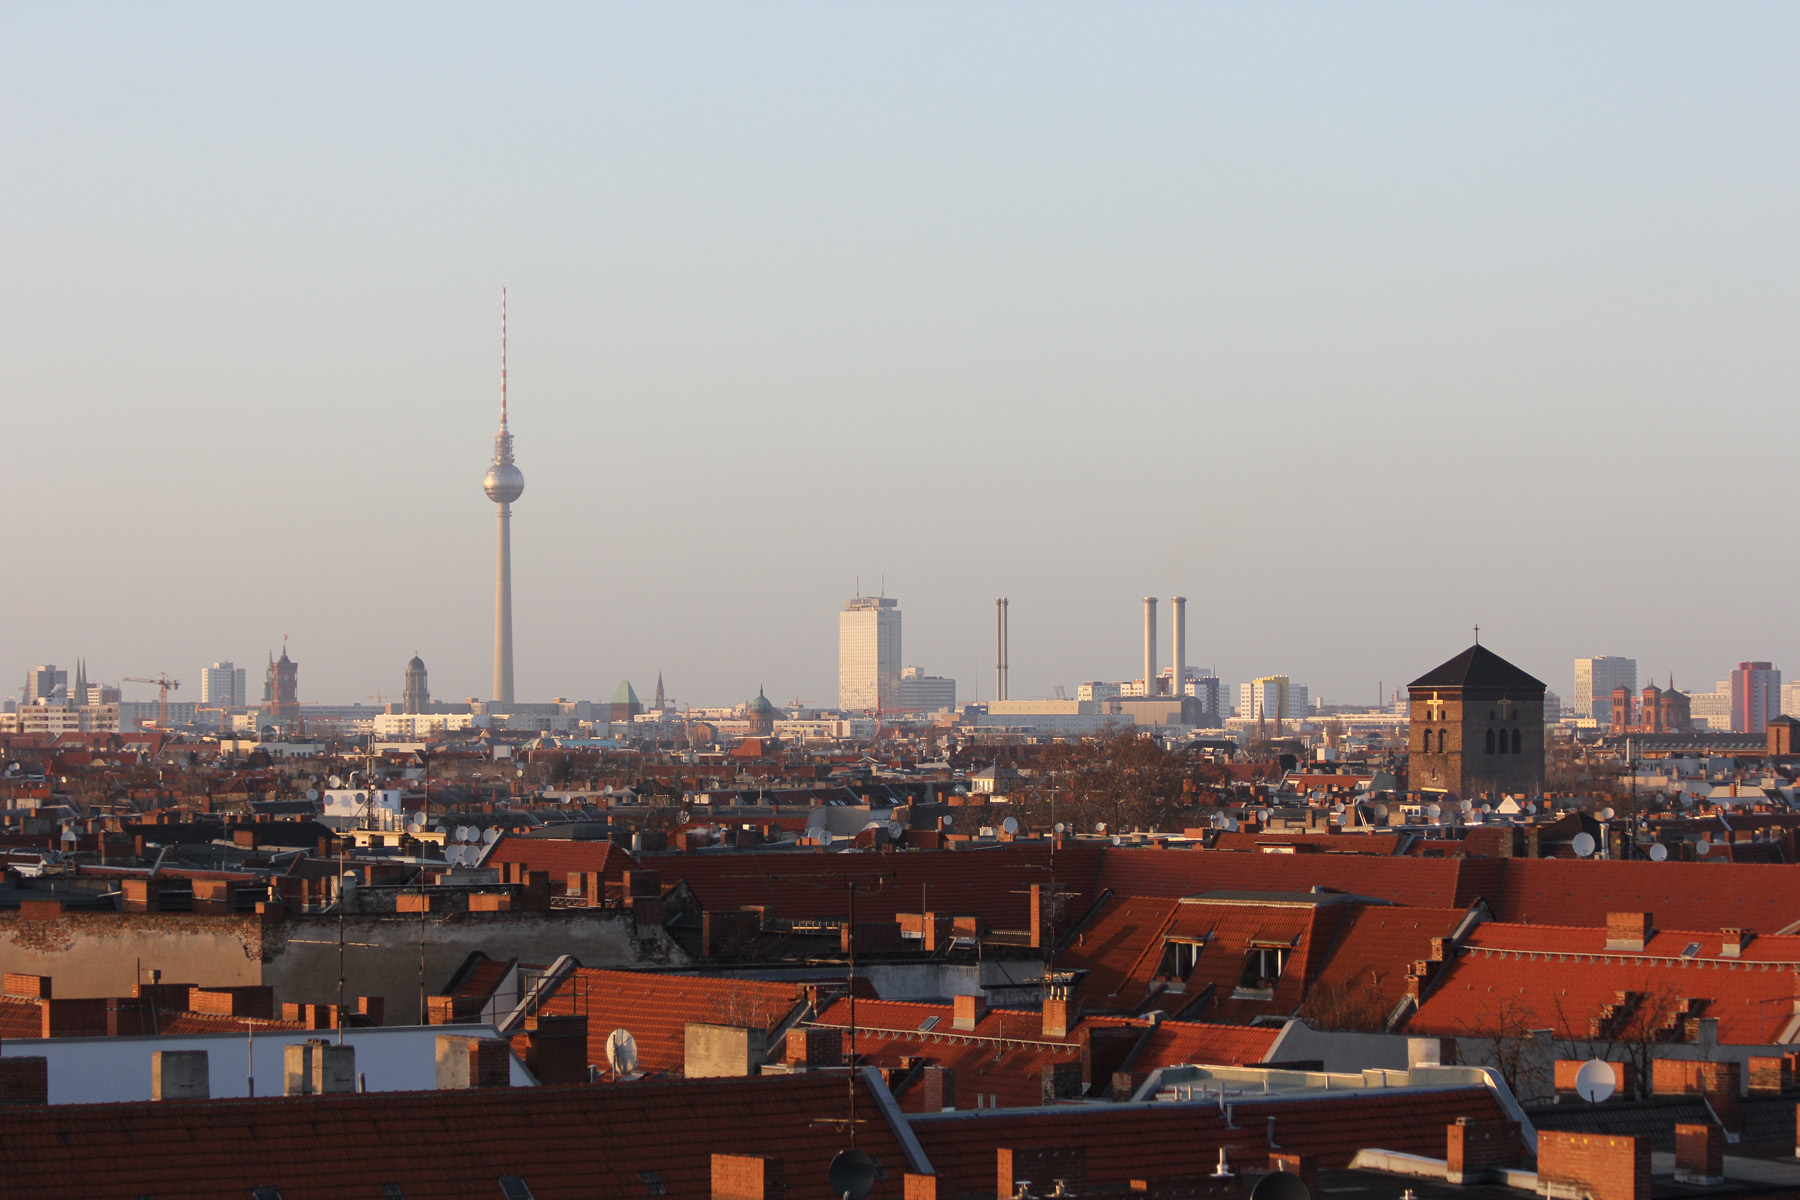 Berlin Skyline - The view from the Parkdeck of the Neukölln Arcaden